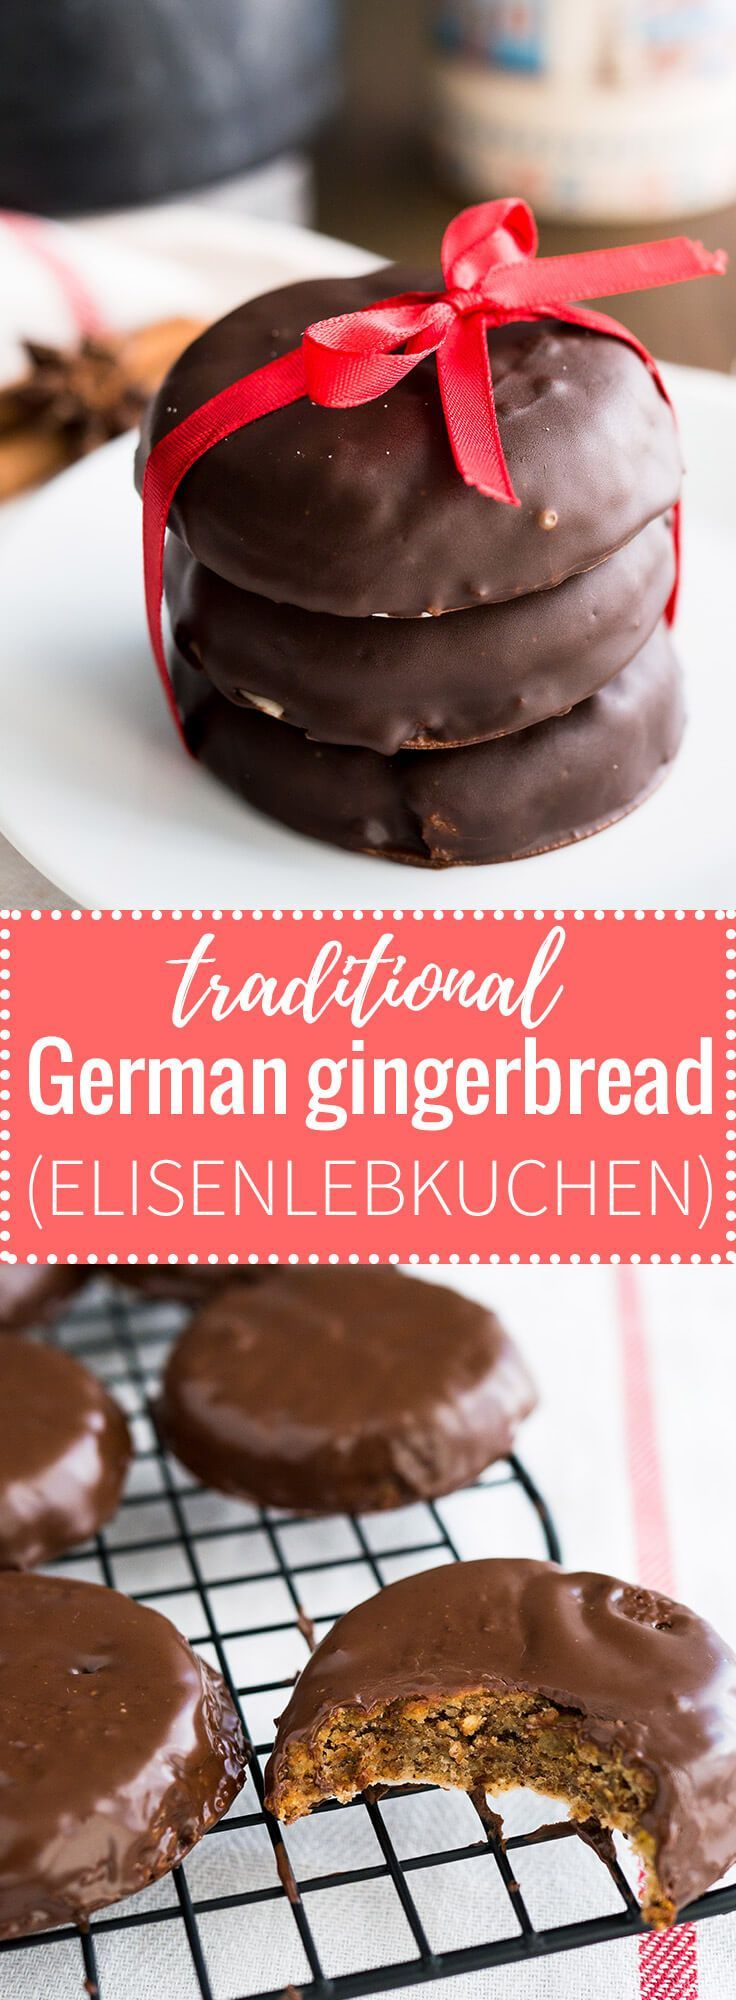 German Gingerbread (Lebkuchen) is a very popular sweet treat during Christmas time in Germany! Elisenlebkuchen contain no flour & are made with ground nuts.